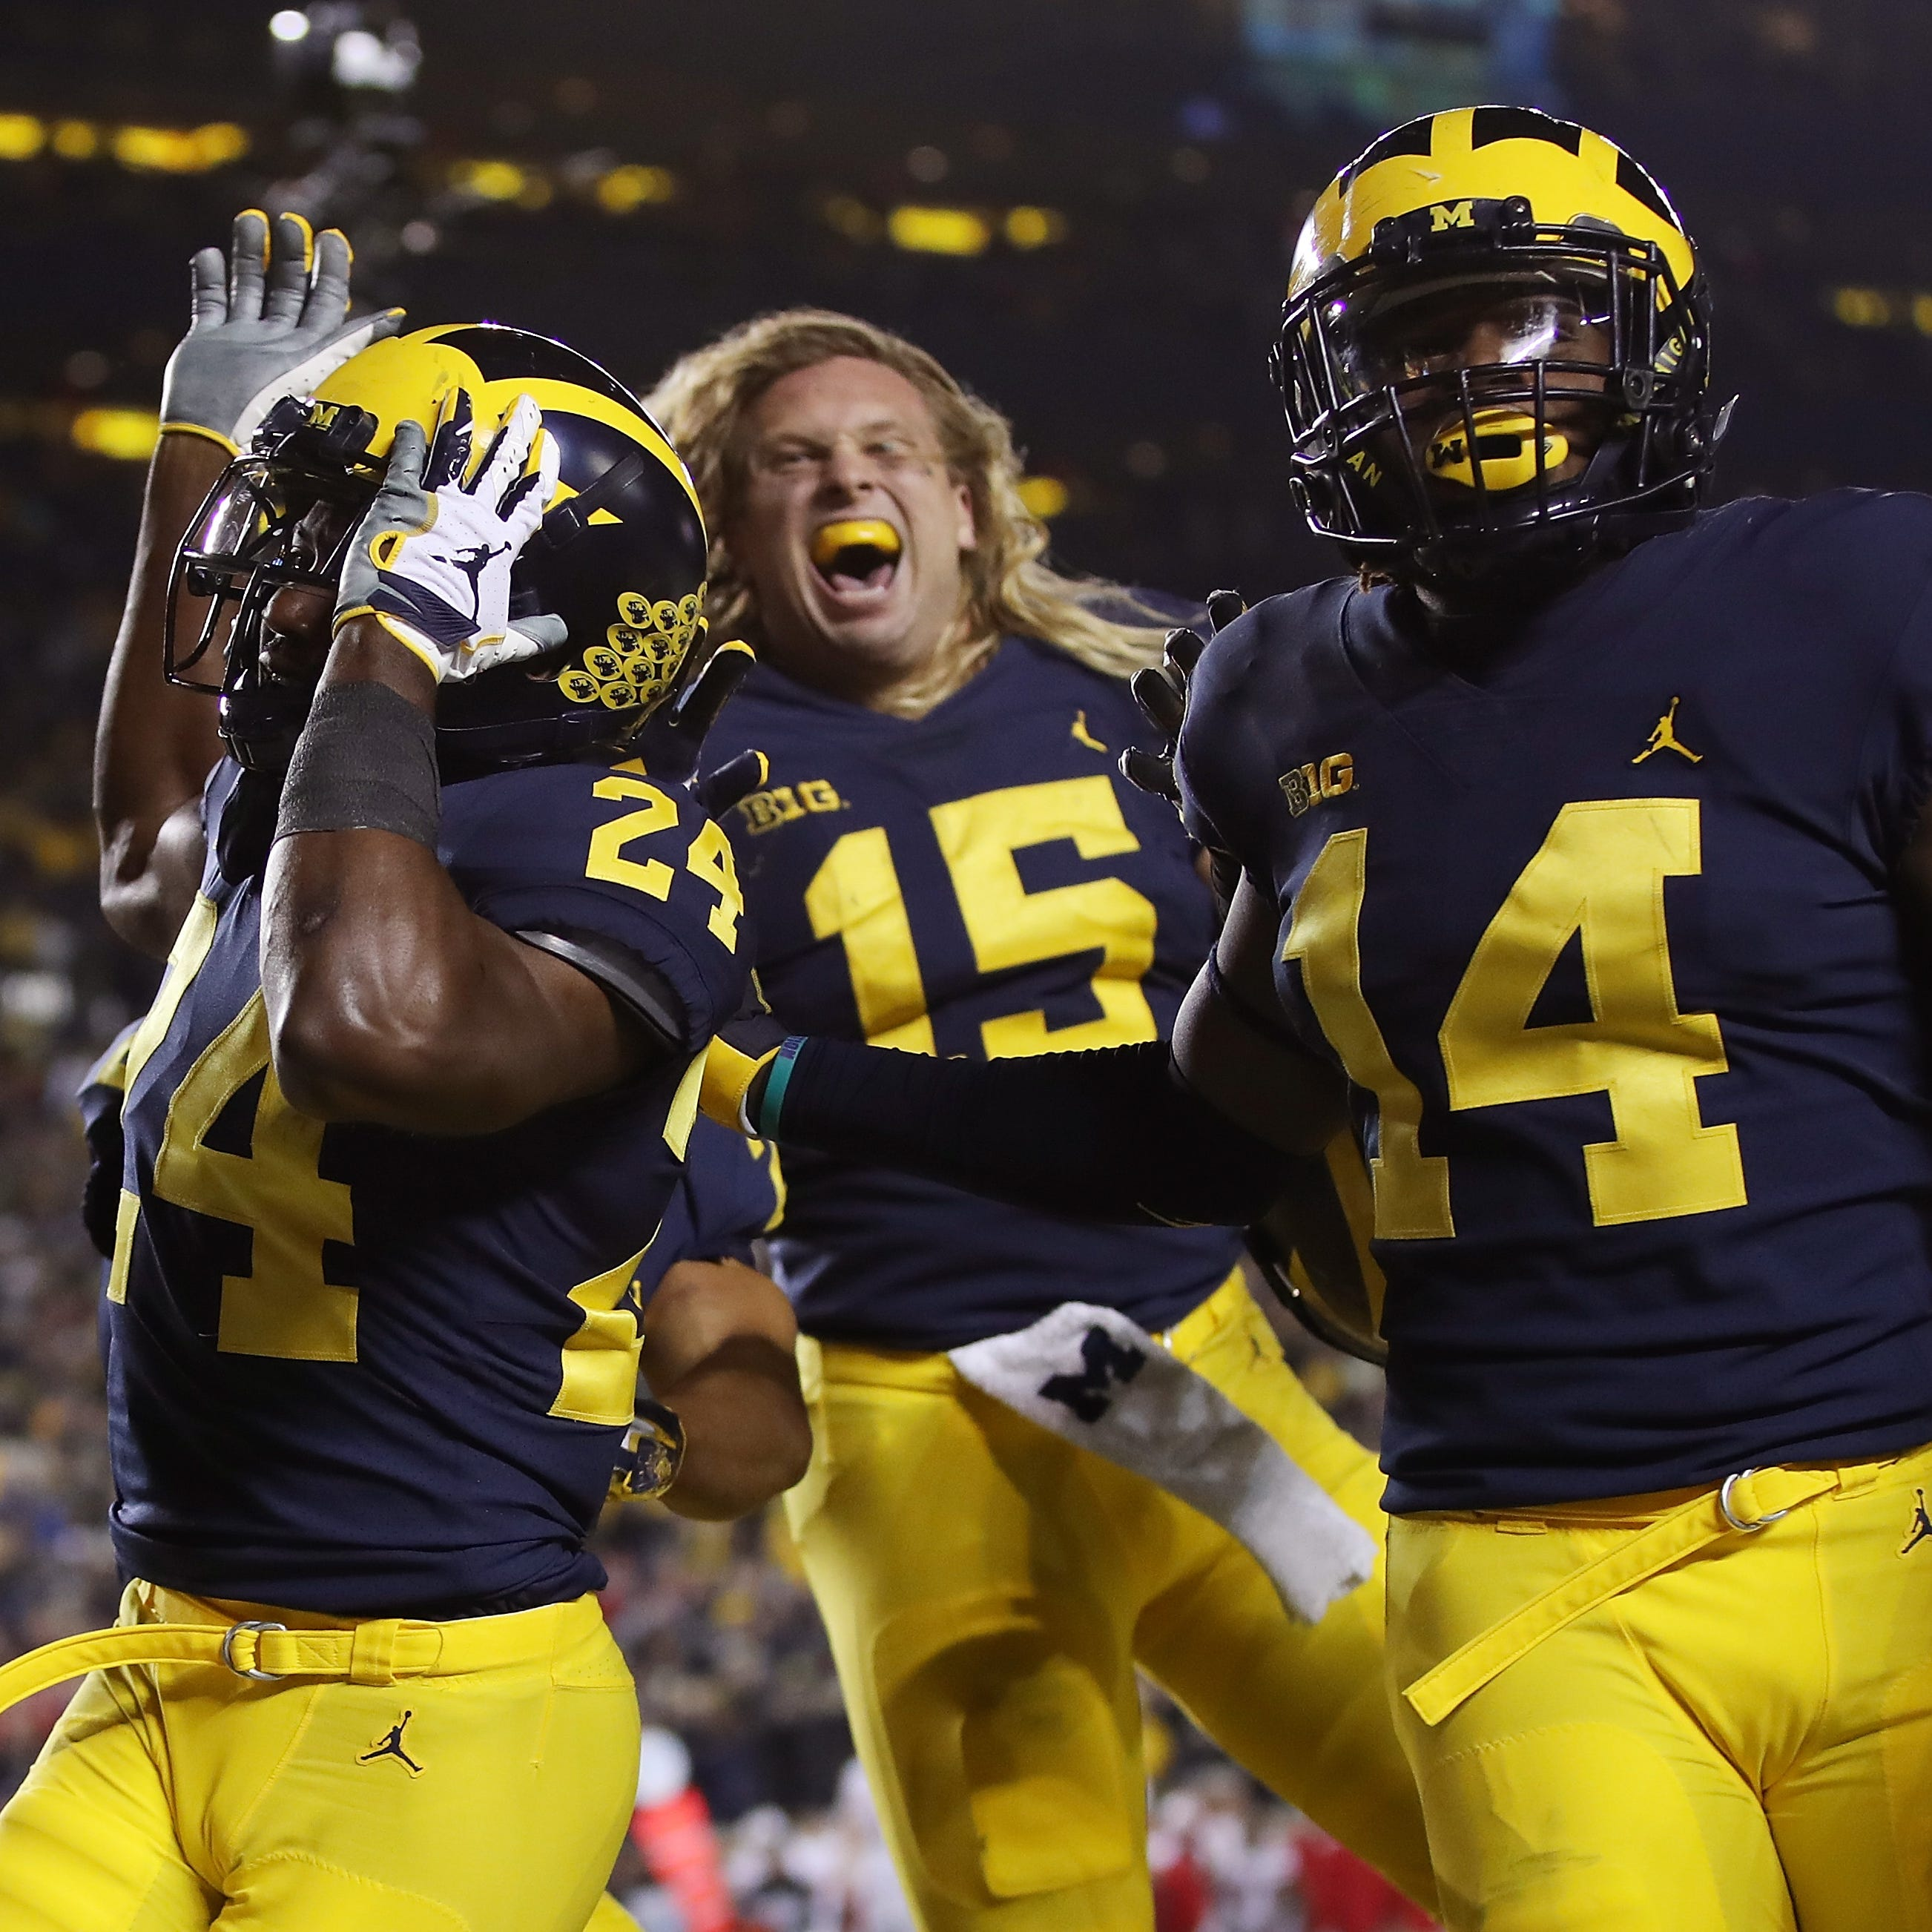 Michigan has best chance to reach playoff as 1-loss team, ESPN says